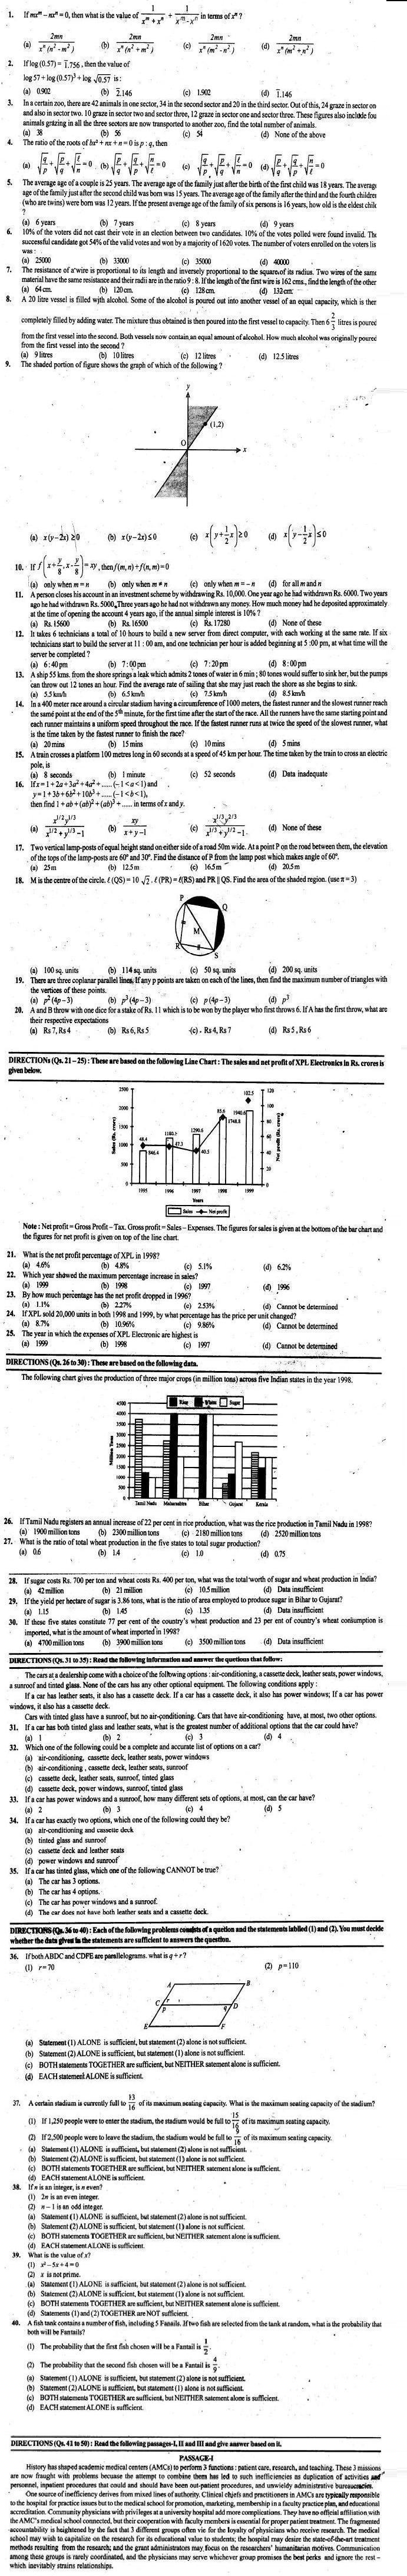 CAT 2009 Previous Year Question Papers